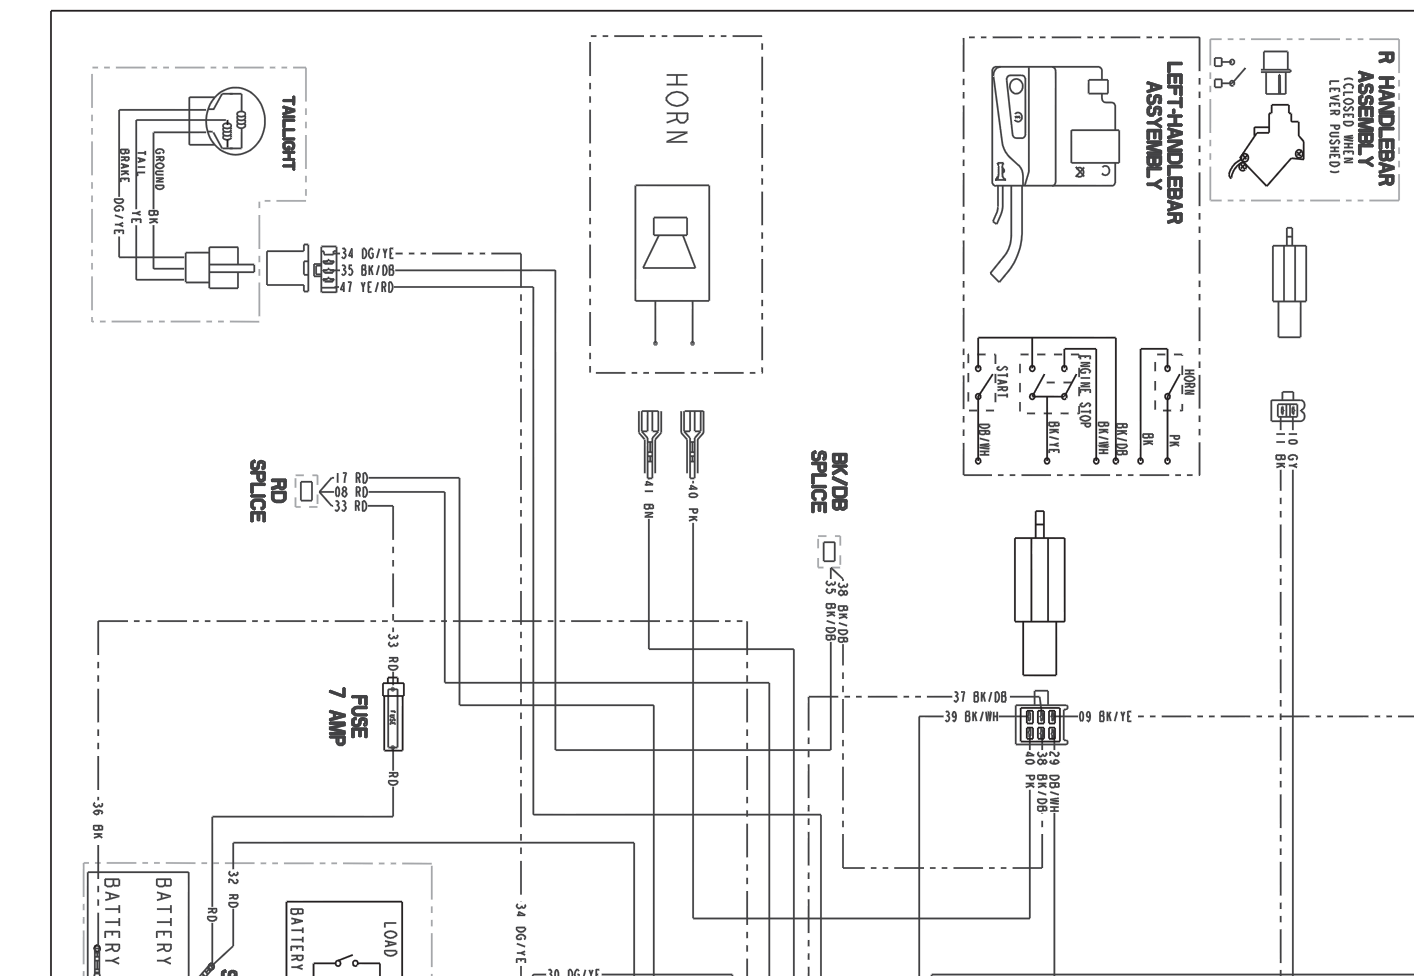 polaris scrambler 50 wiring diagram free with 330 Polaris Sportsman Wiring Diagram on Redcat Atv Mpx110 Wiring Diagram Old Style P 10421 also 2002 Polaris Scrambler 90 Wiring Diagram also Polaris Ranger 500 Engine Diagram also Polaris Five Wire Ignition Switch Wiring Diagram also Diagram.